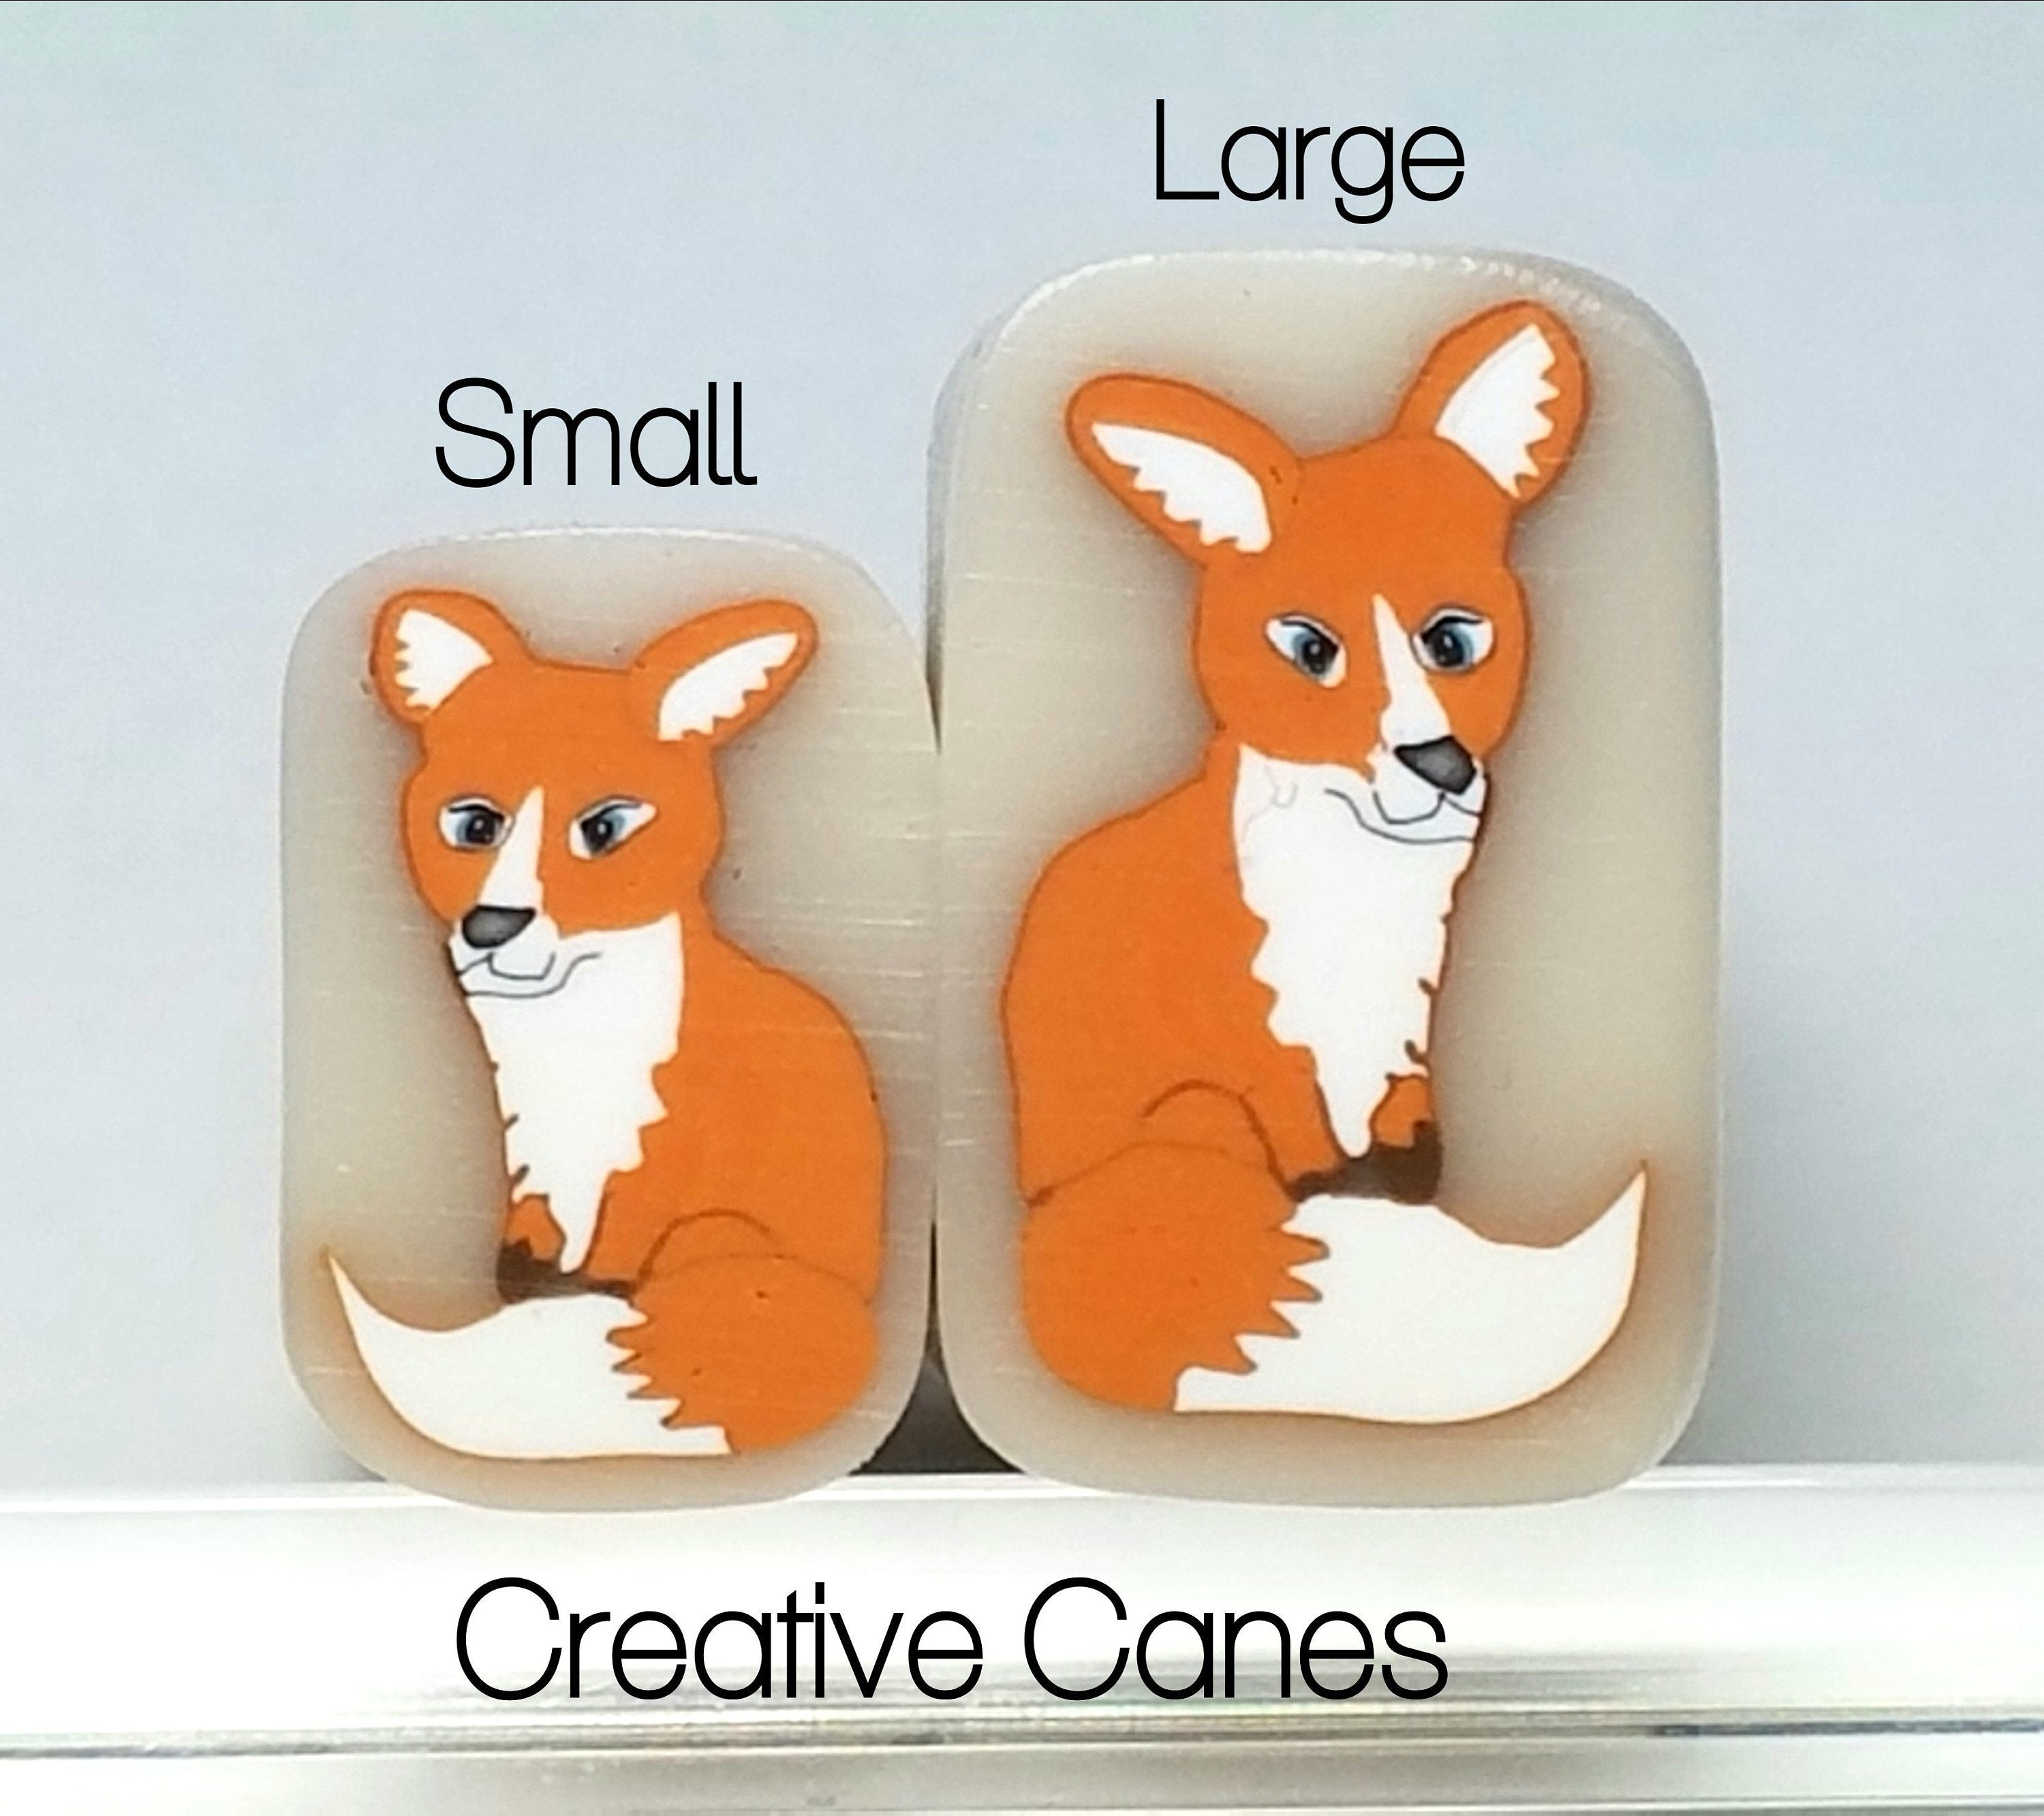 Fox Cane, Raw Clay Cane, Small size is sold out